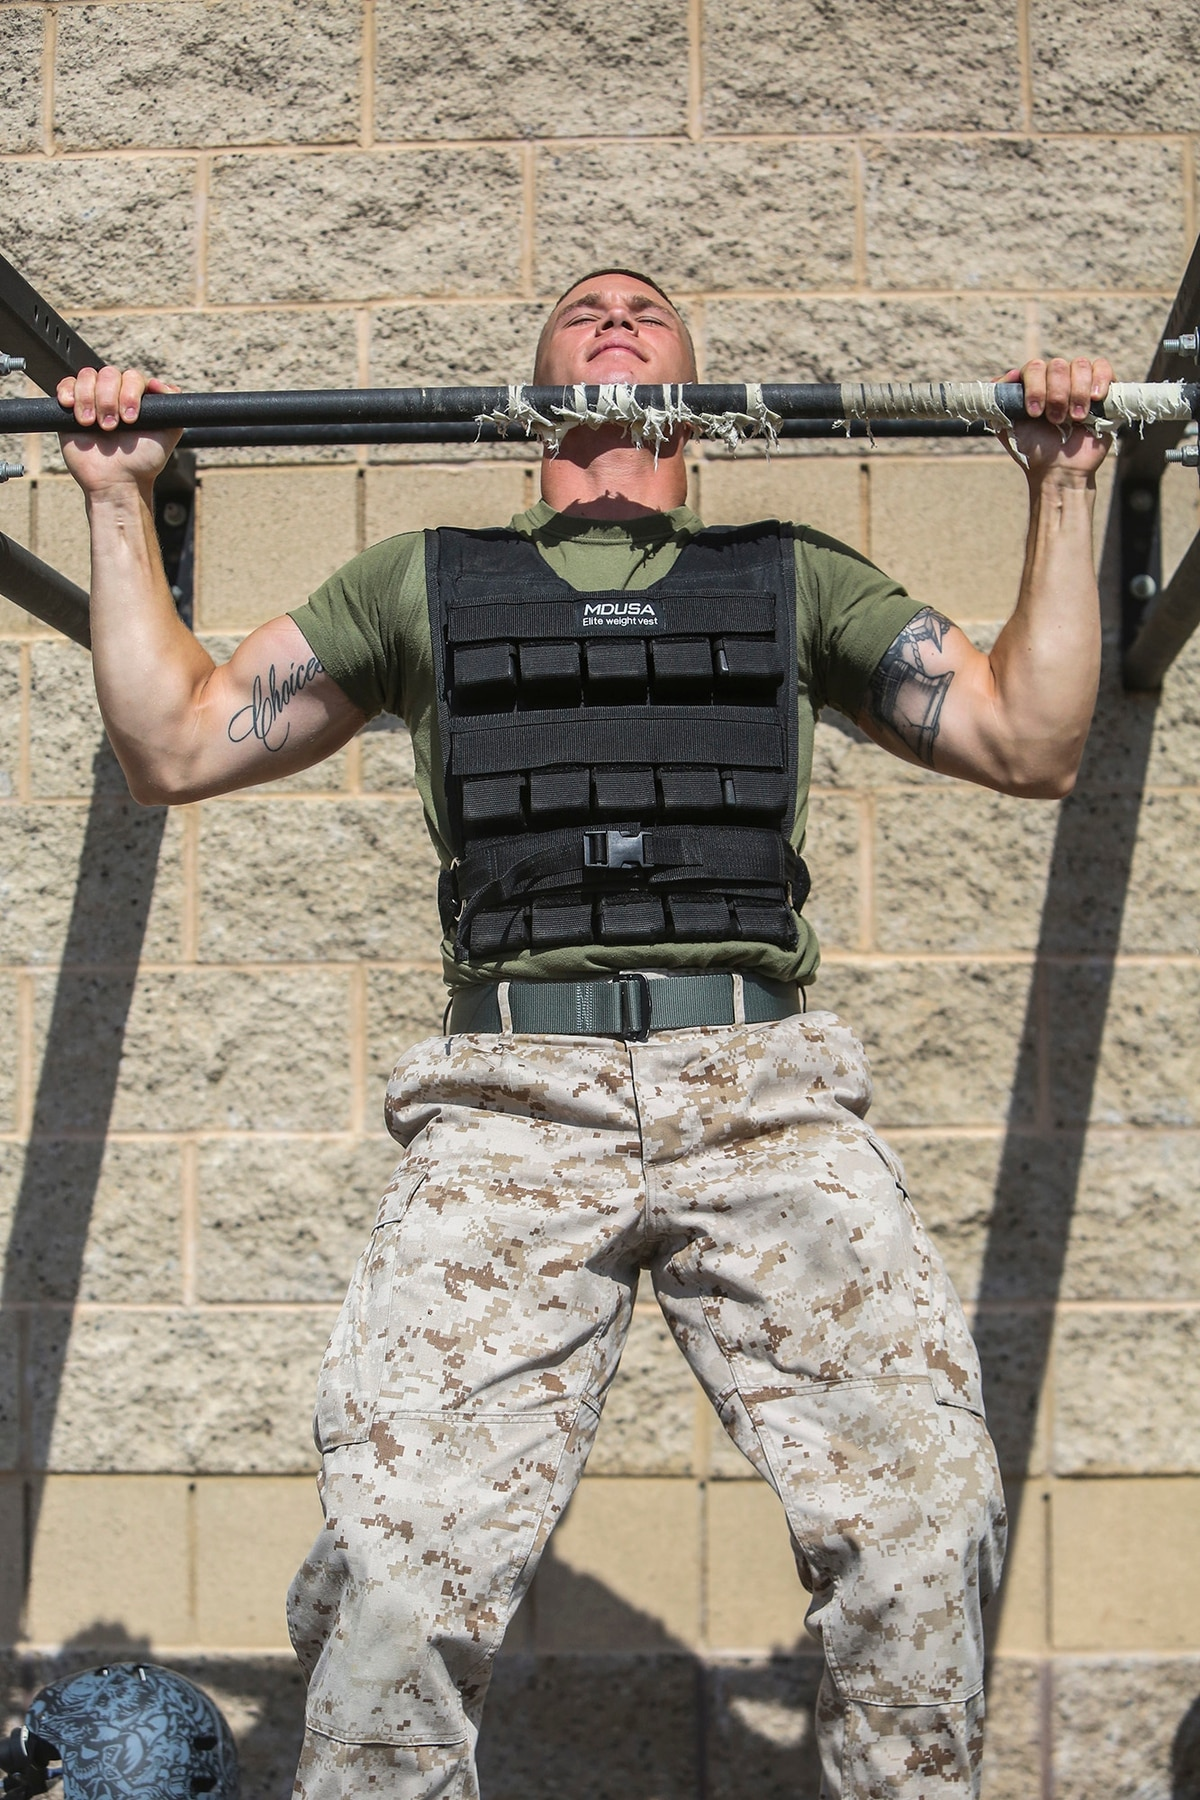 Military Muscle: 5 weight vest workouts for all levels